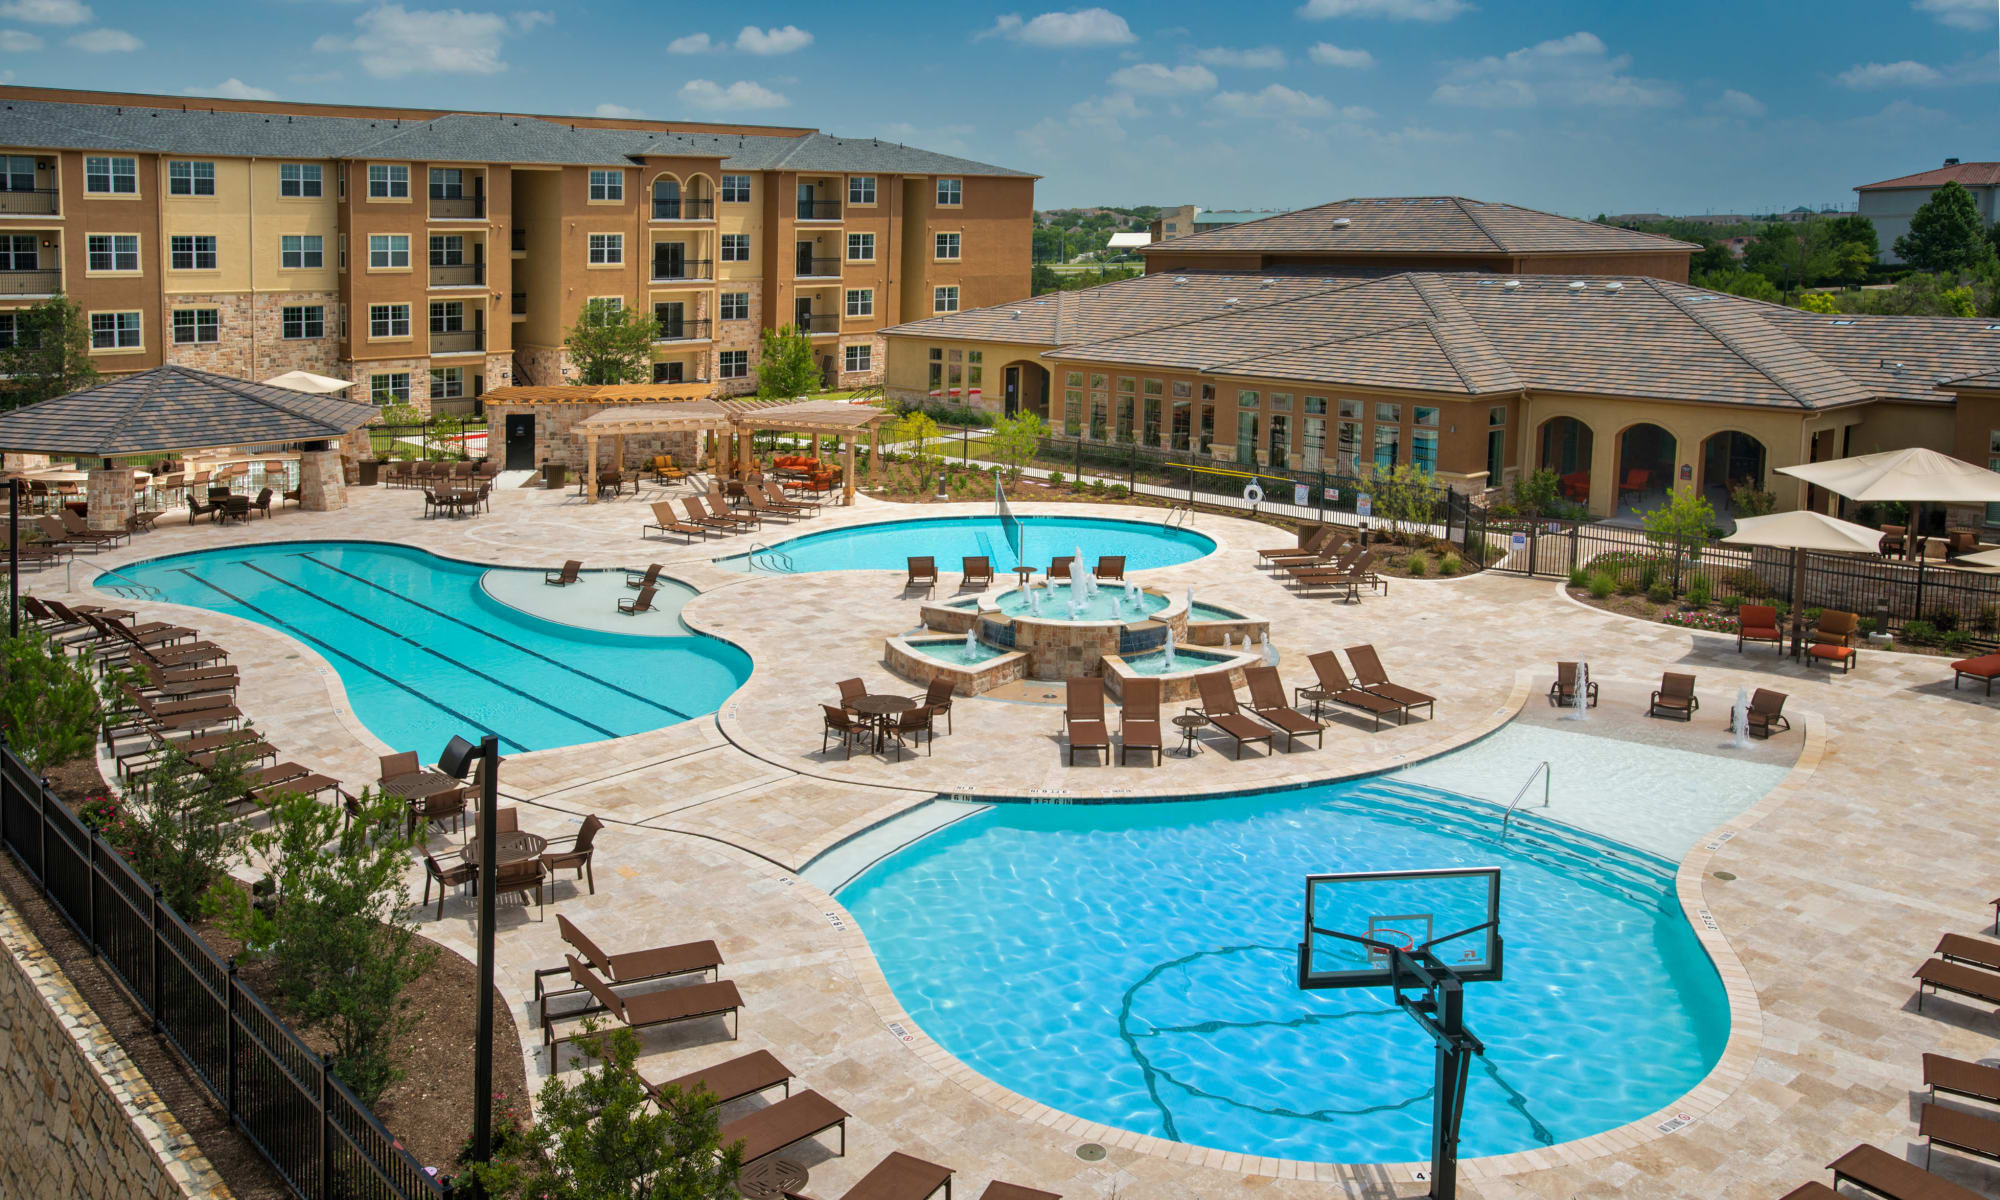 Apartments at Villas in Westover Hills in San Antonio, Texas